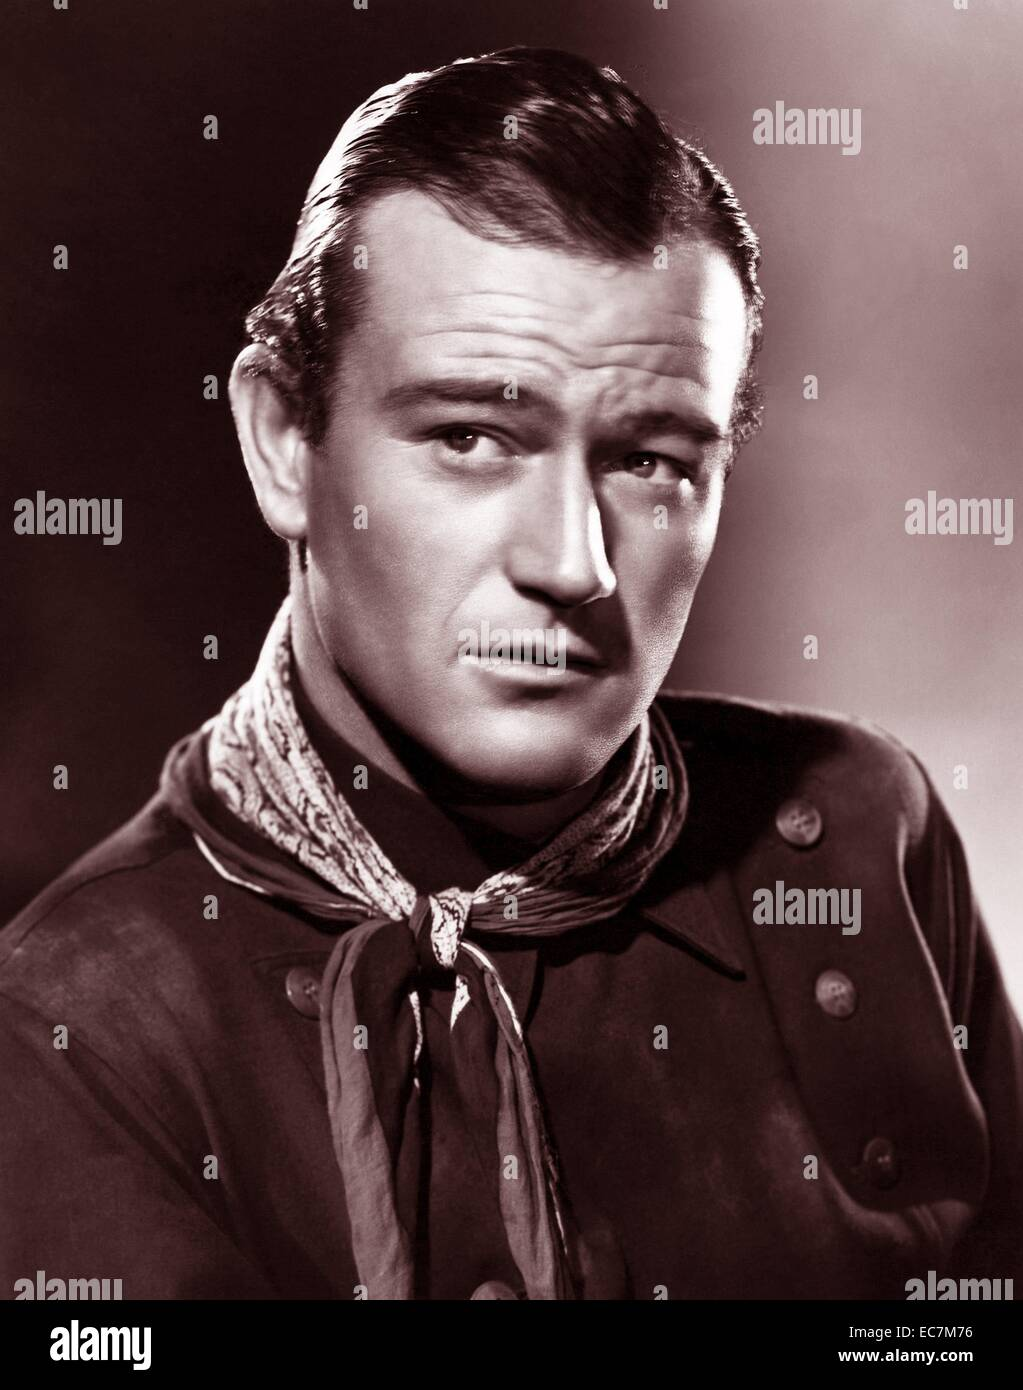 John Wayne 1907 – June 11, 1979, American film actor, director and producer. In stagecoach 1939 - Stock Image